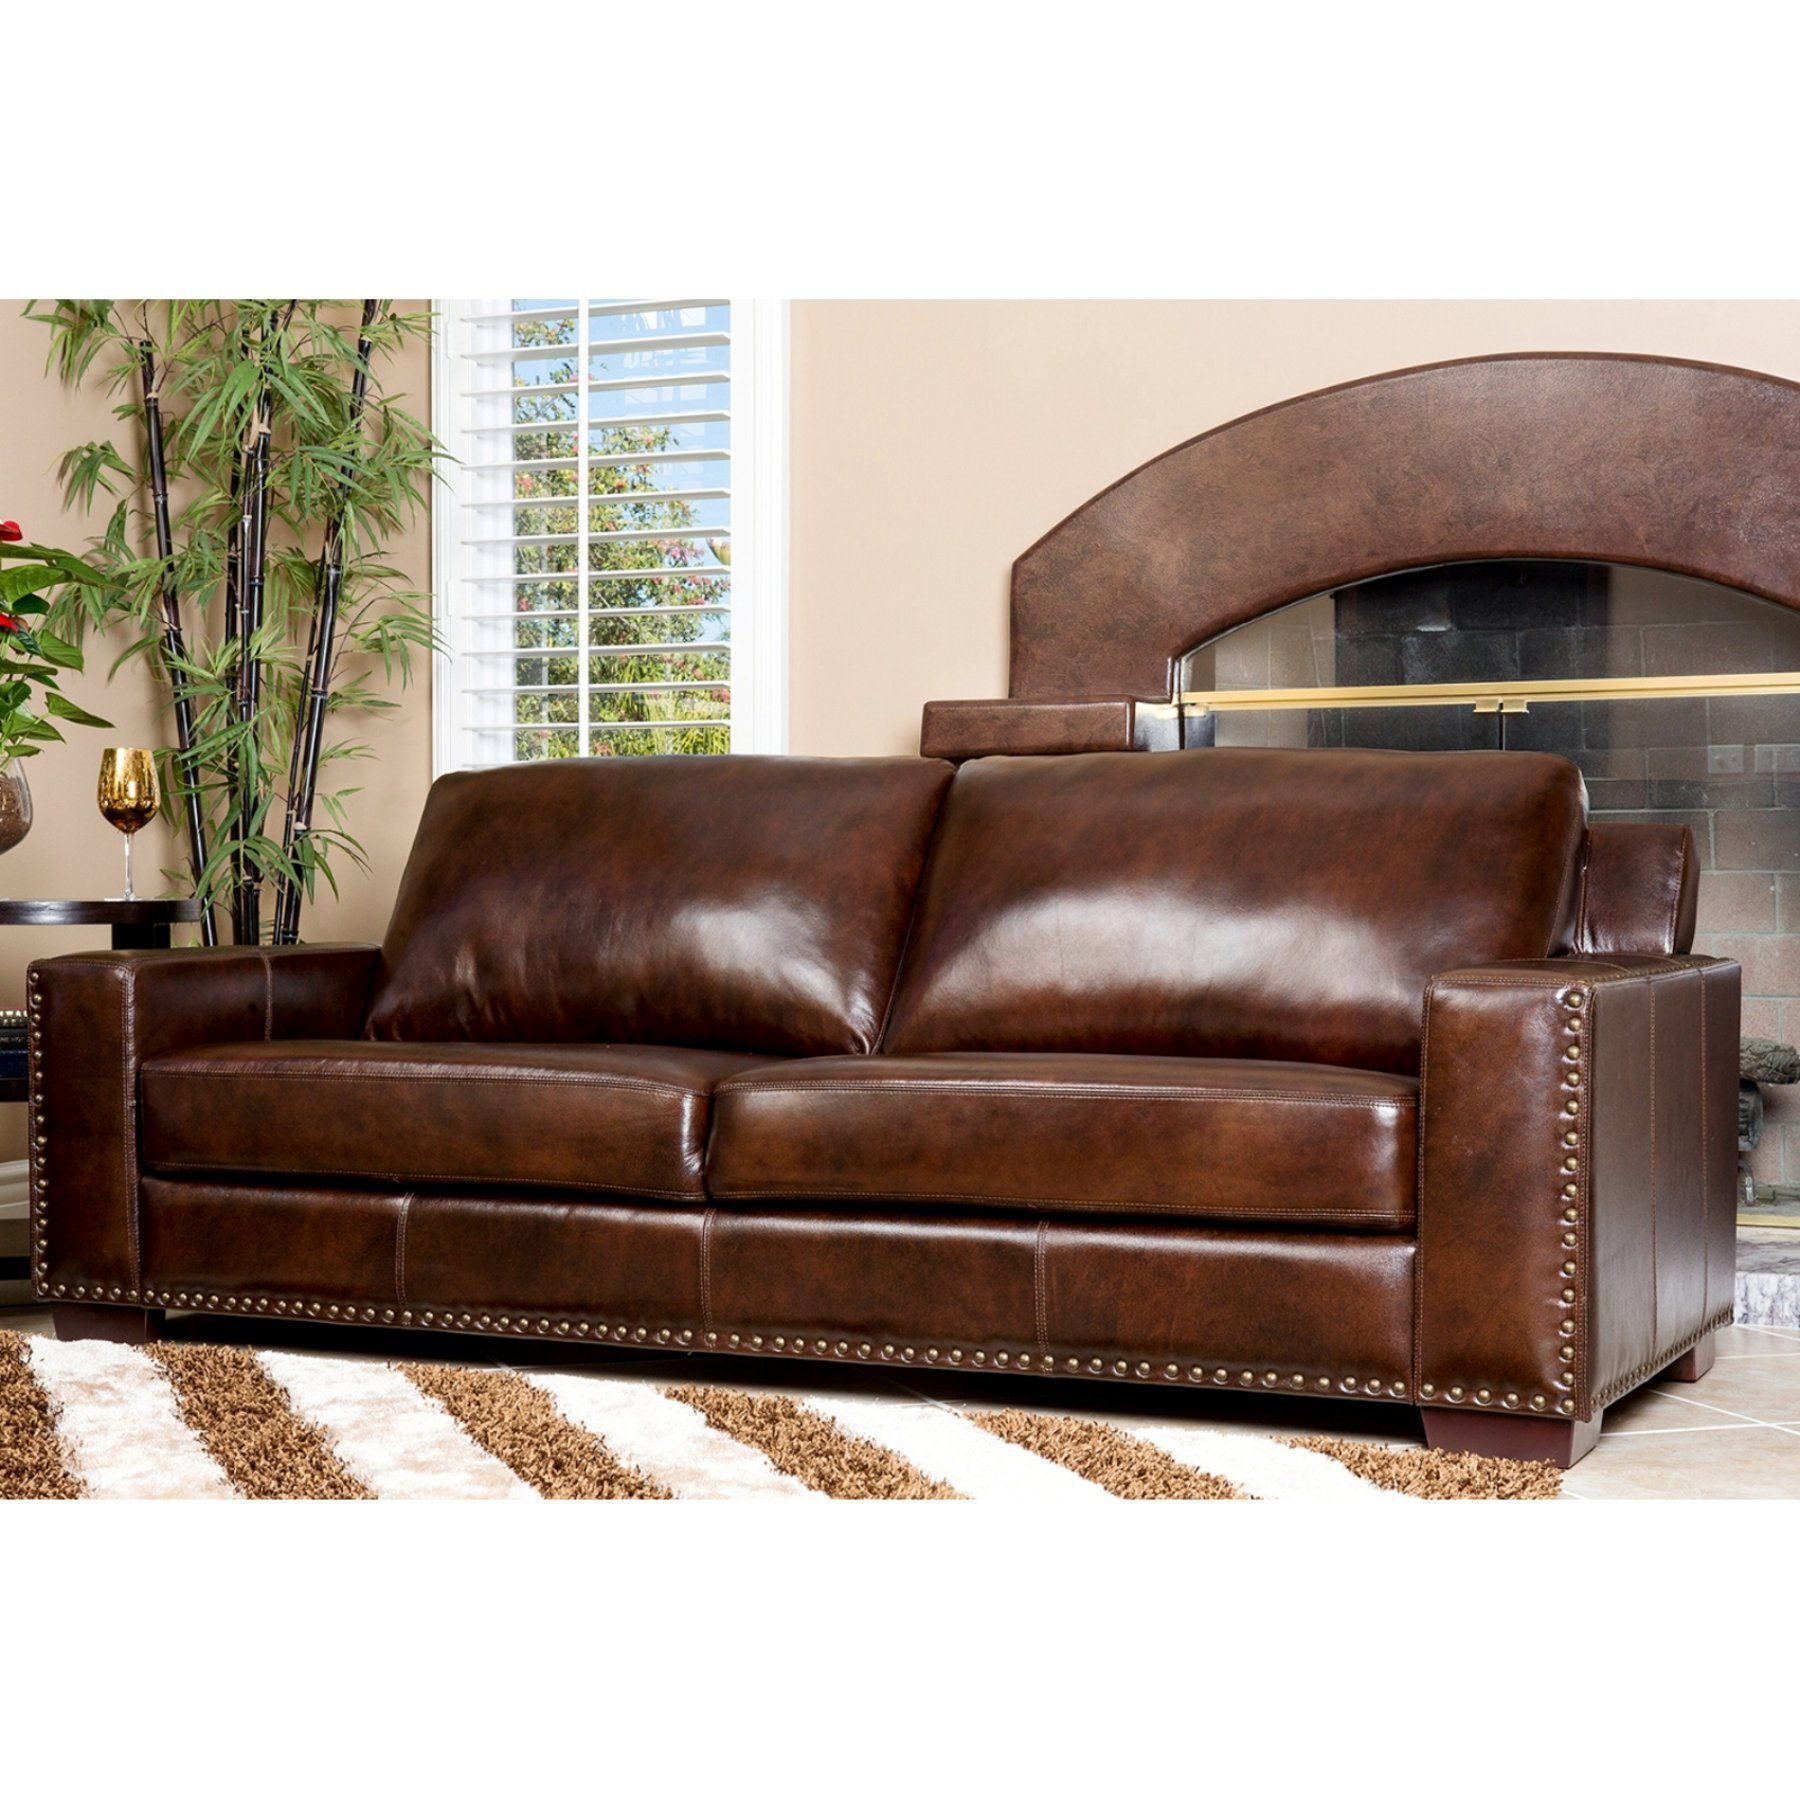 Groovy Abbyson Beverly Hand Rubbed Leather Sofa Brown Sk 9060 Machost Co Dining Chair Design Ideas Machostcouk